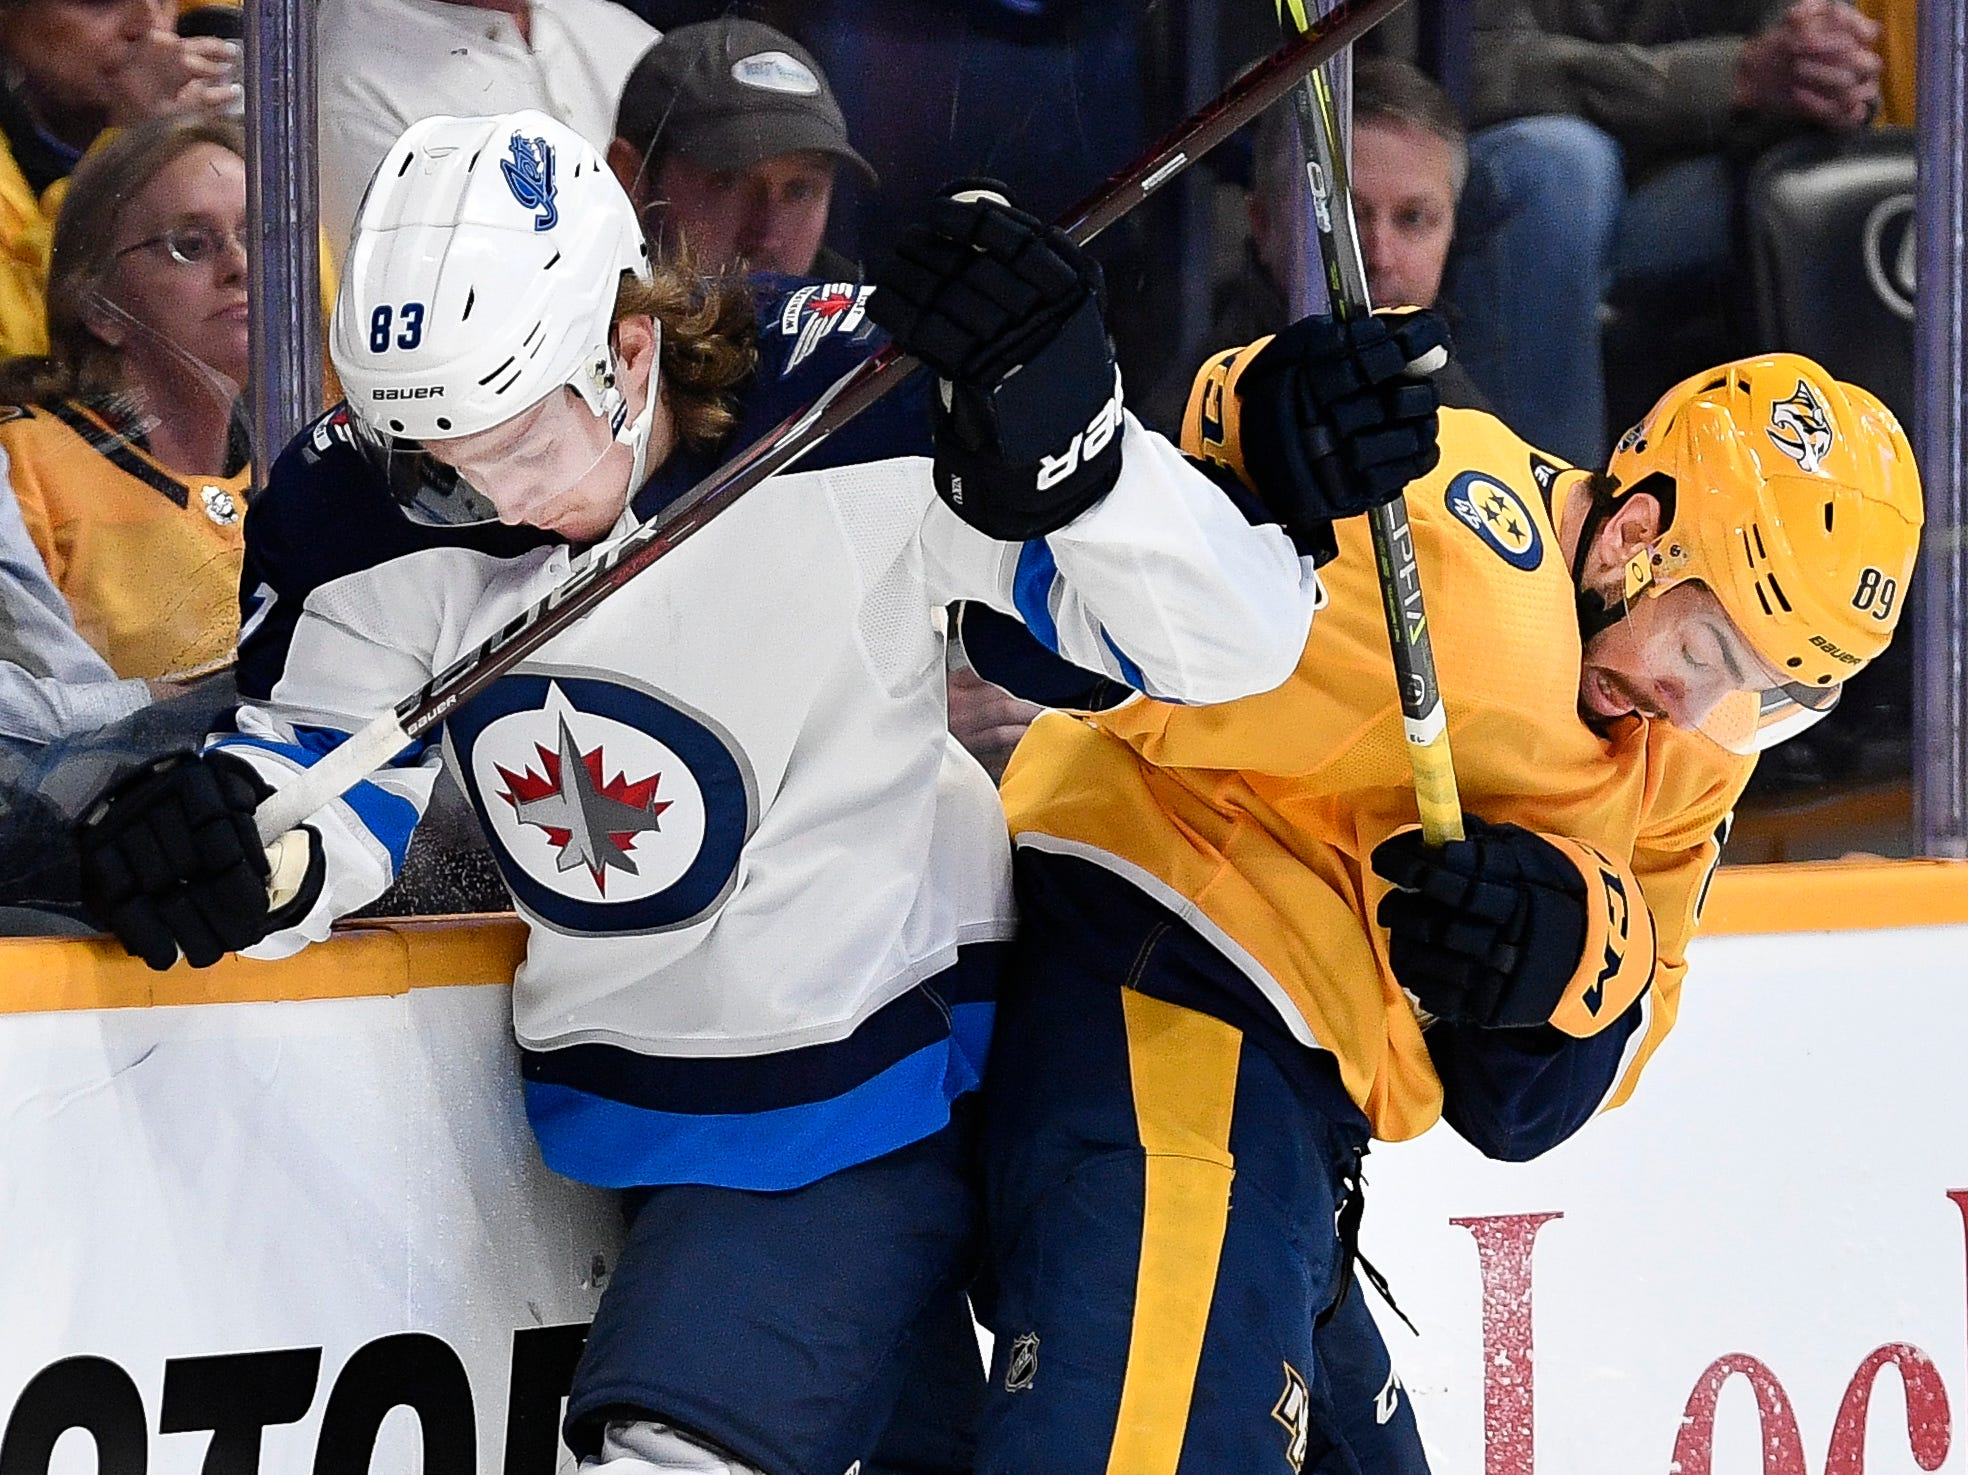 Nashville Predators center Frederick Gaudreau (89) battles for the puck with Winnipeg Jets defenseman Sami Niku (83) during the first period at Bridgestone Arena in Nashville, Tenn., Thursday, Jan. 17, 2019.